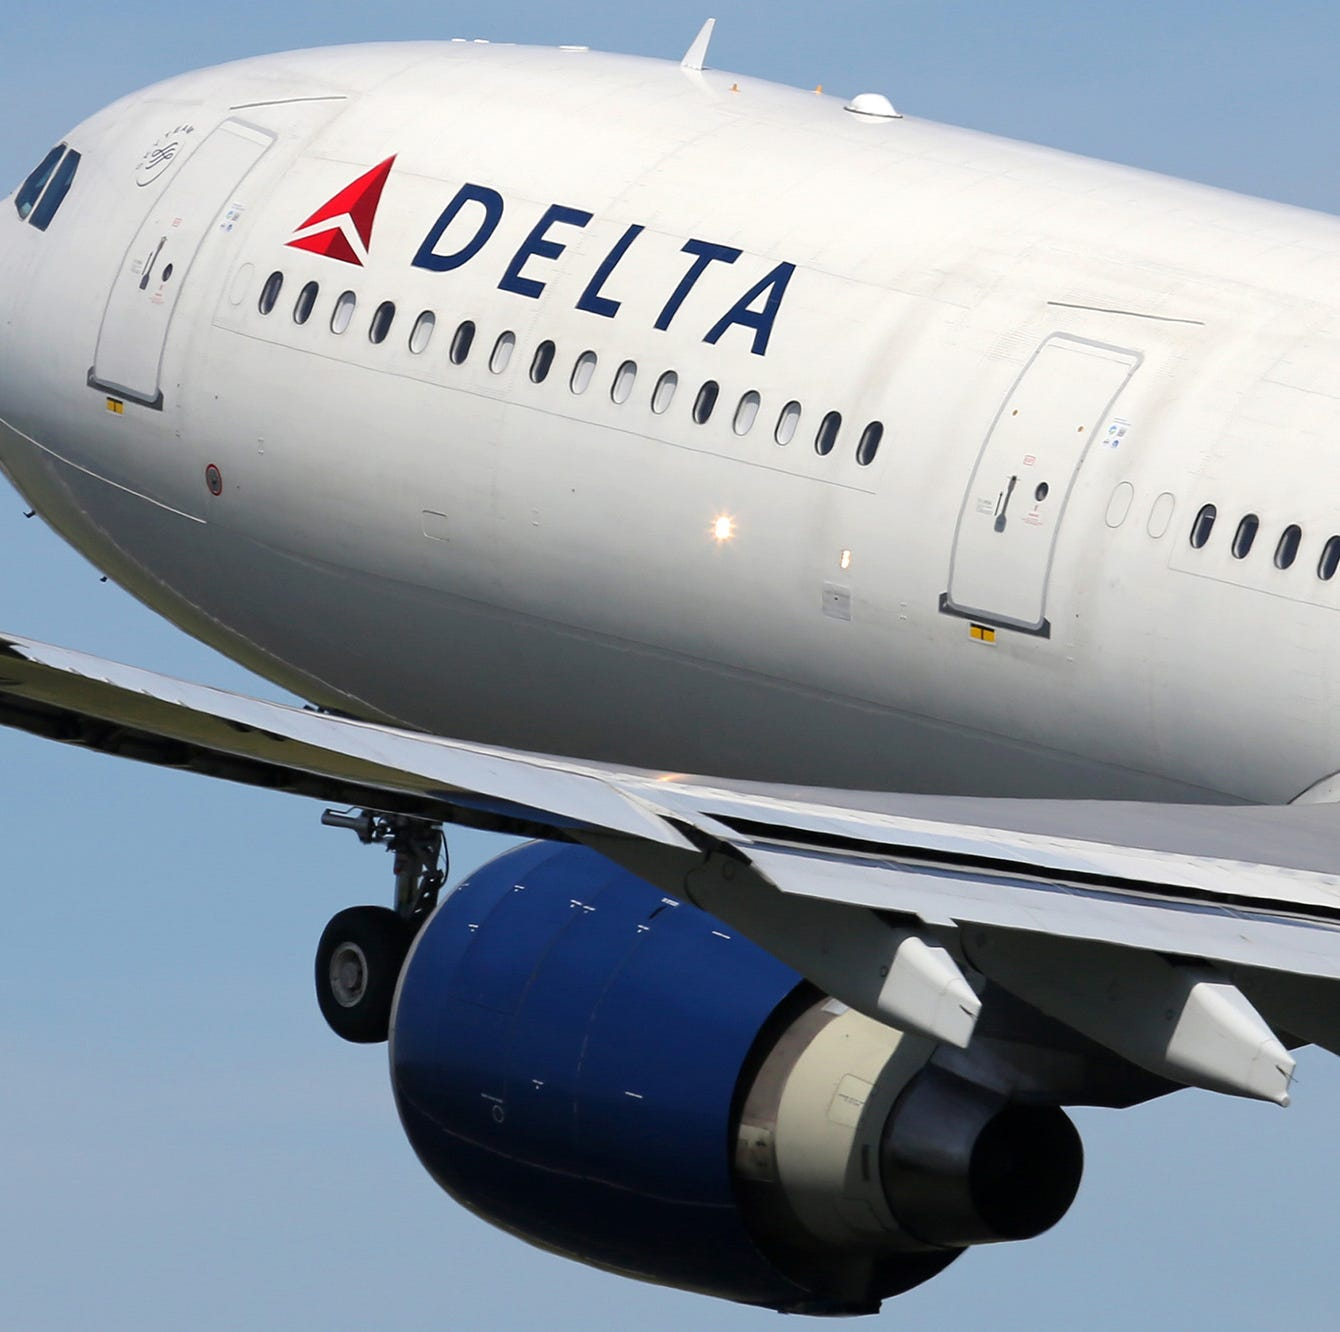 Delta Air Lines to test free in-flight Wi-Fi